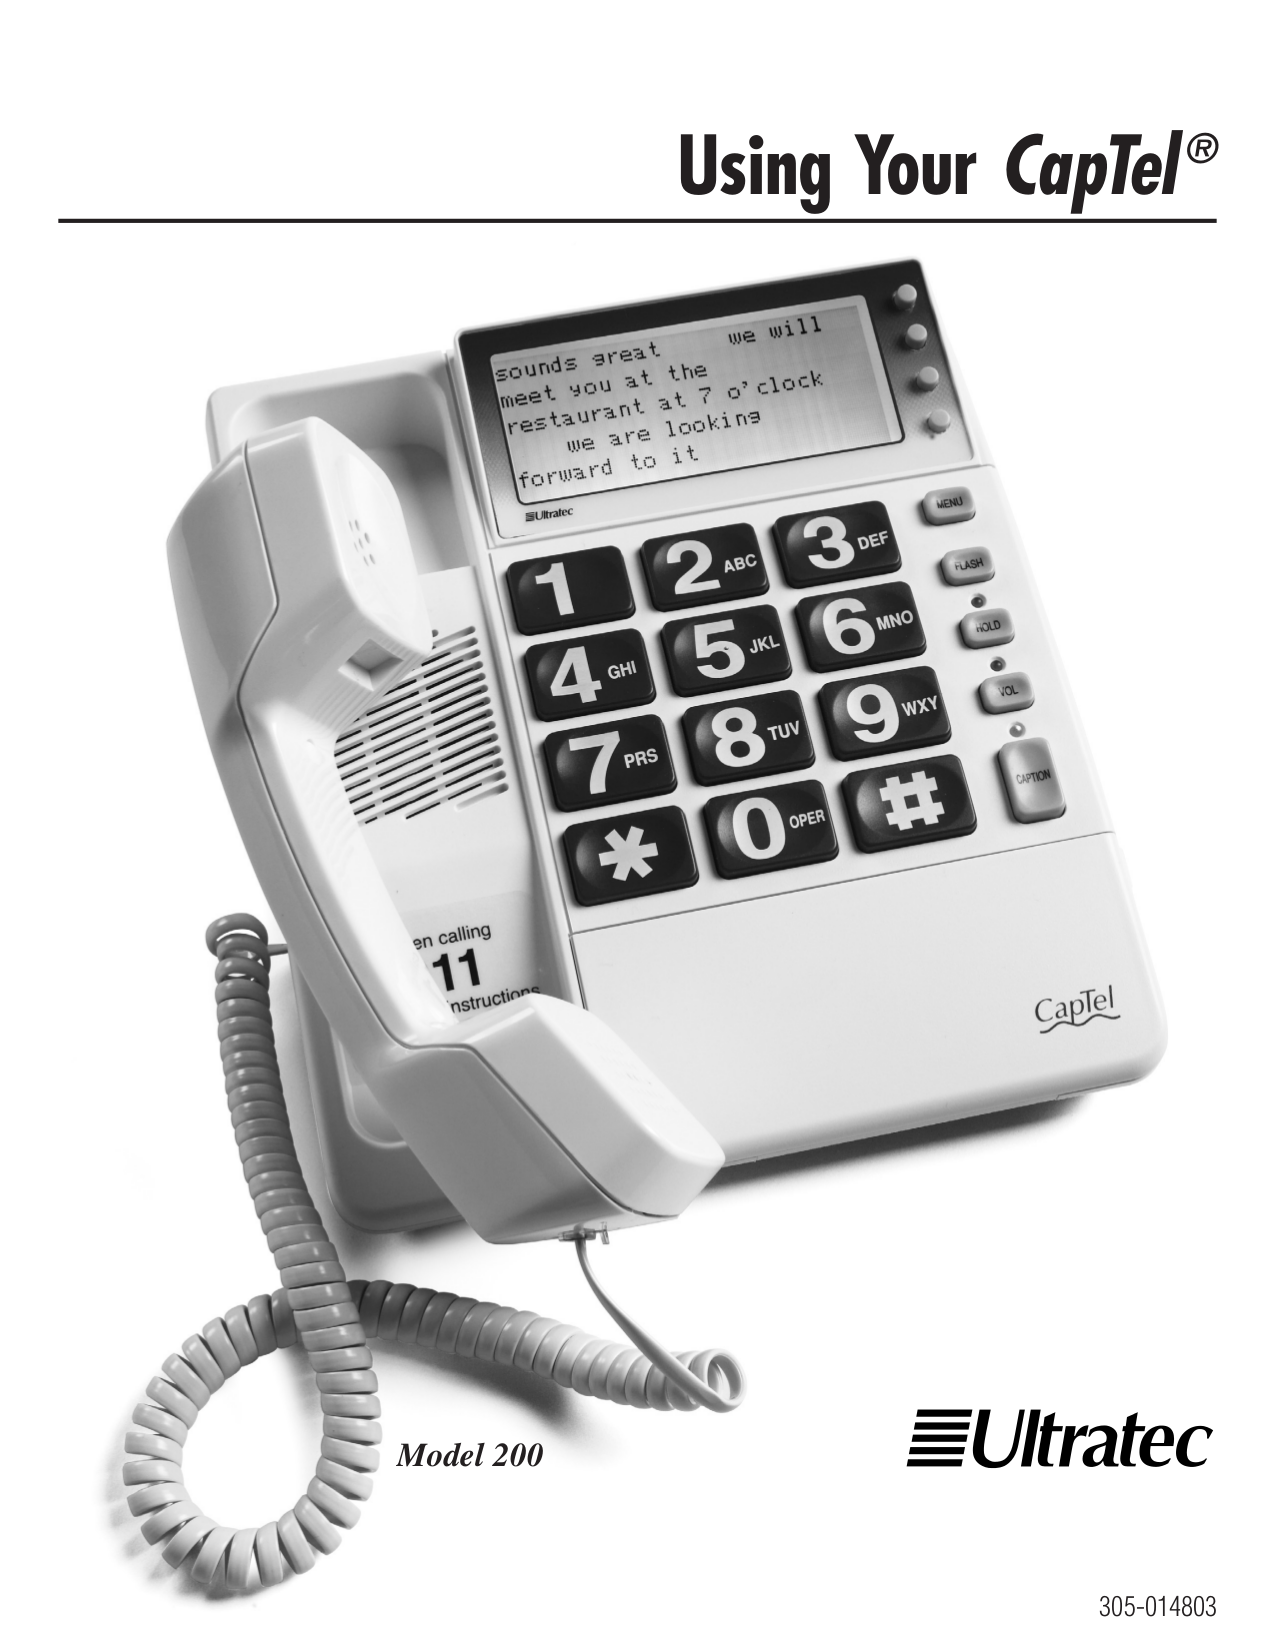 pdf for Ultratec Telephone Captel 200 manual